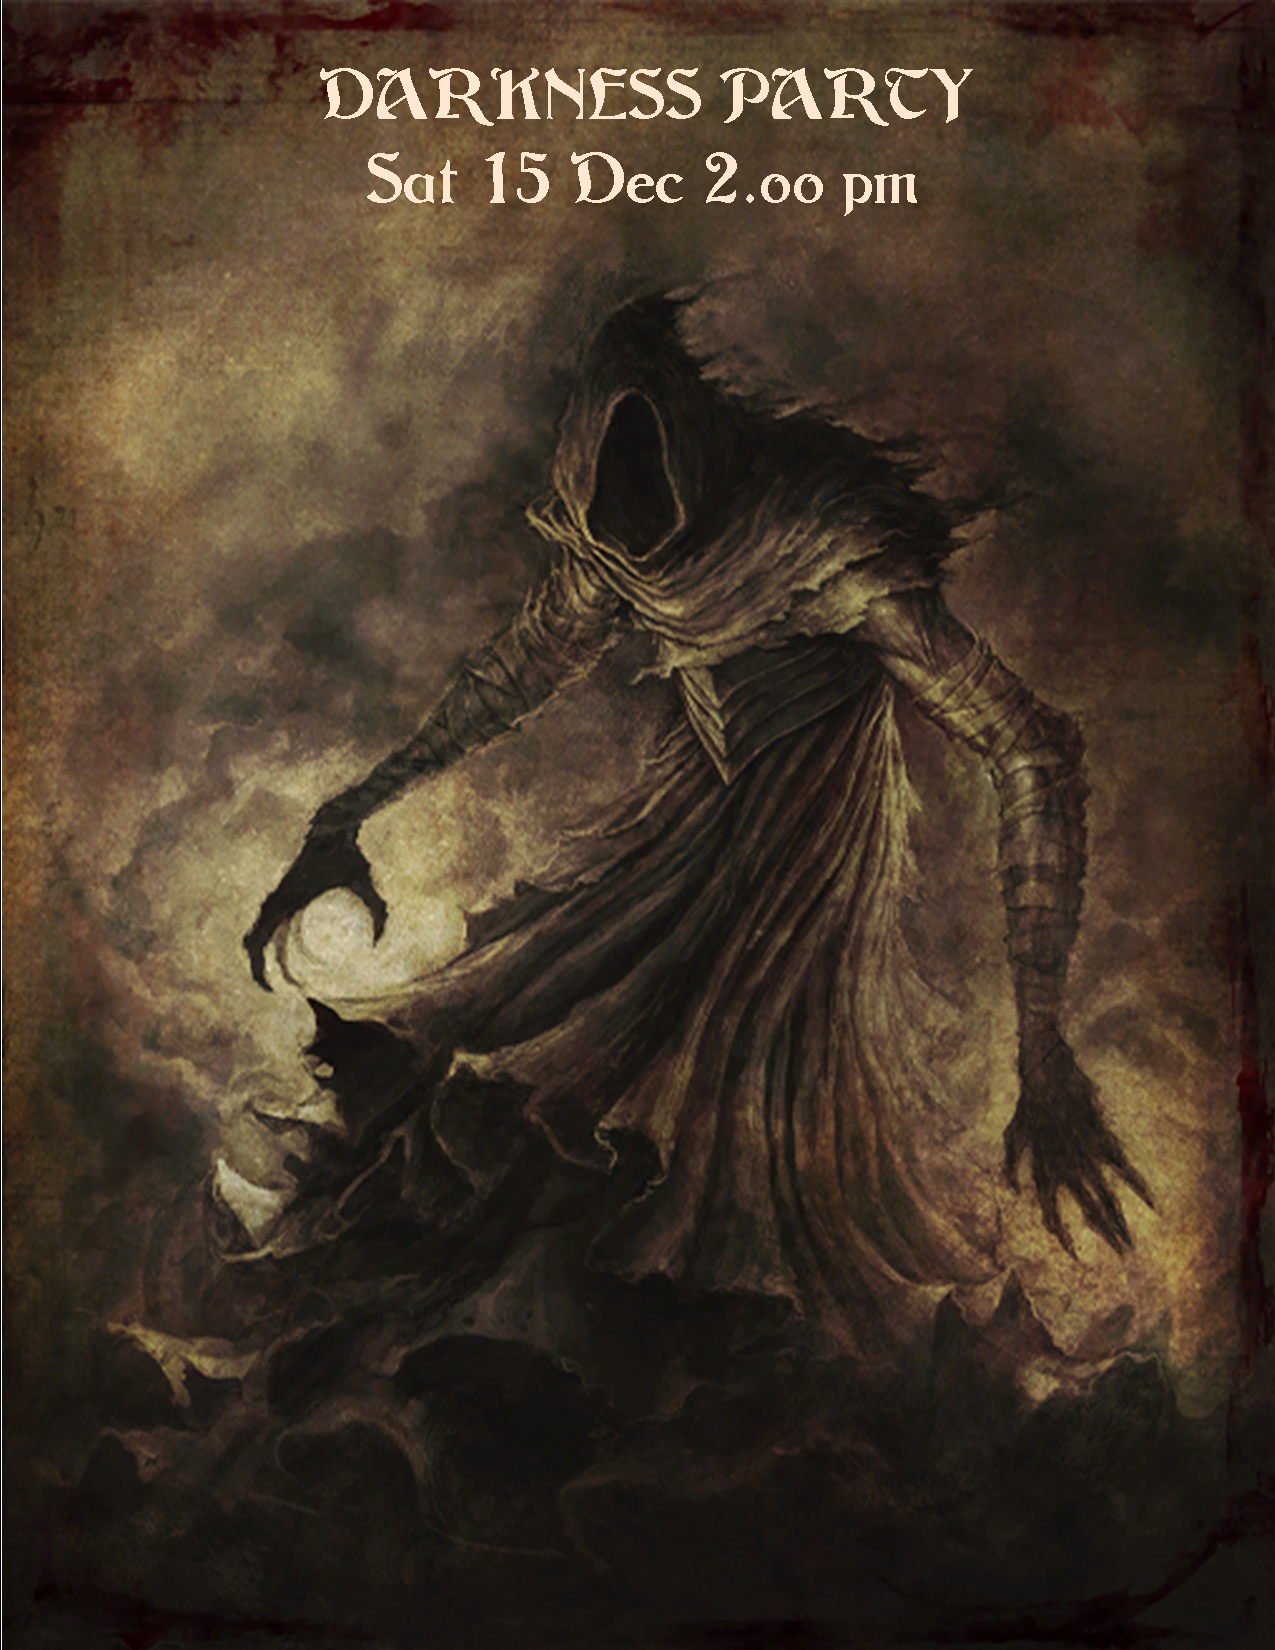 DARKNESS PARTY POSTER SAT 15 DEC 2.00PM